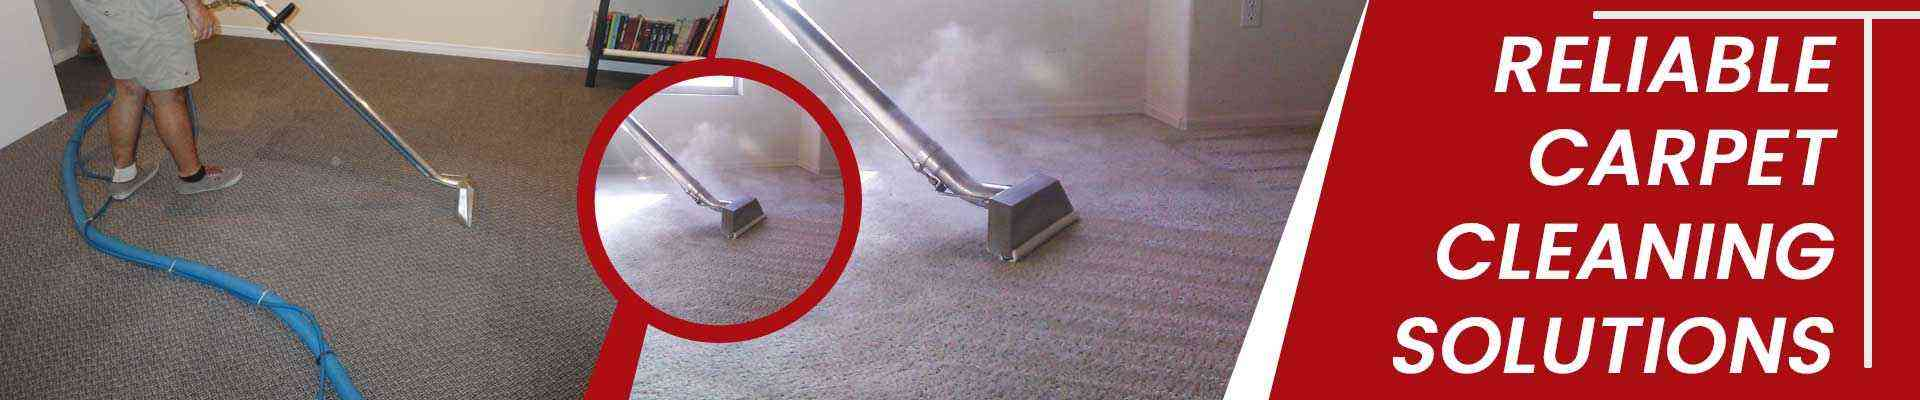 Carpet Cleaning Macquarie Centre